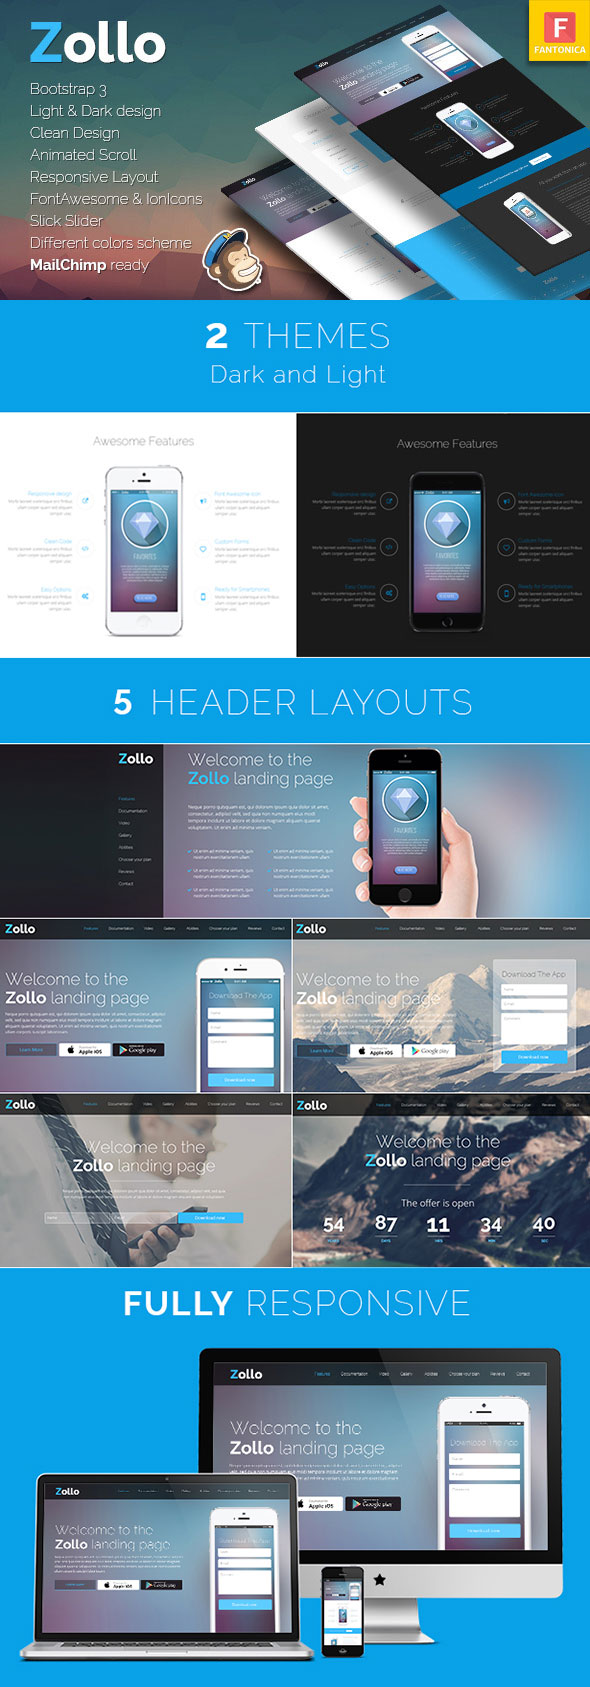 Zollo Bootstrap Responsive Landing Page Template